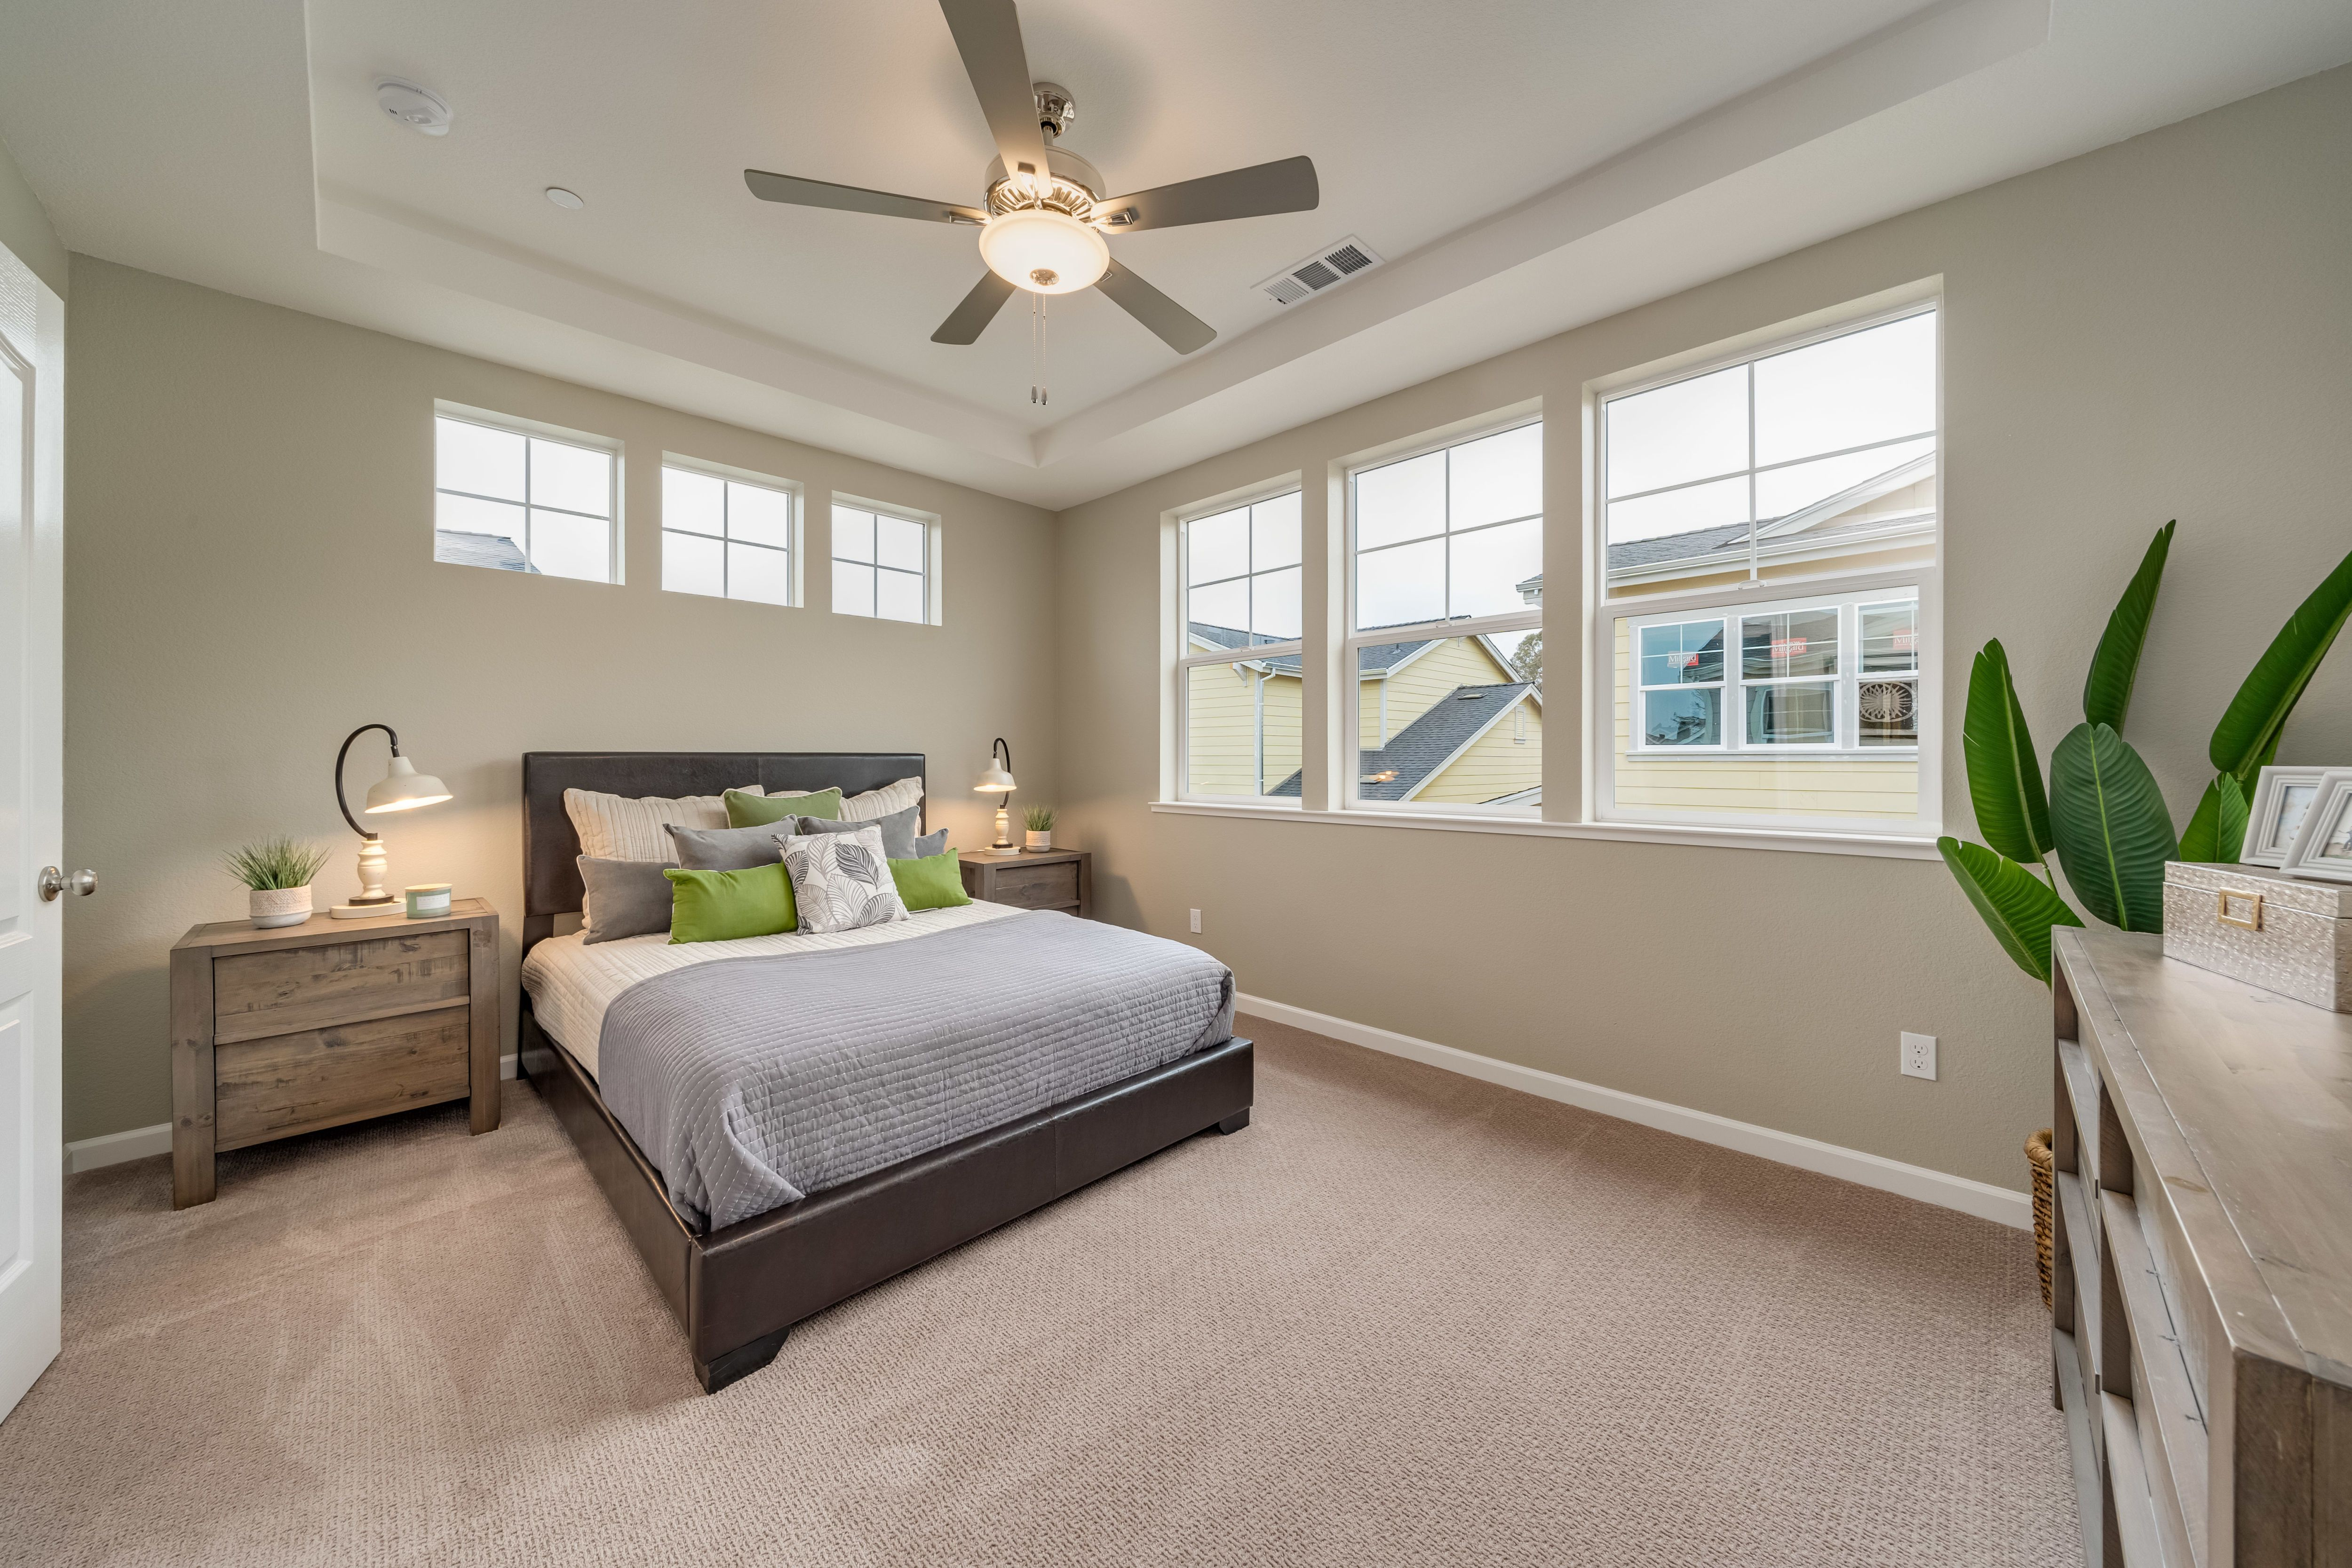 Bedroom featured in the Plan 5E By The Gardens in Santa Rosa, CA